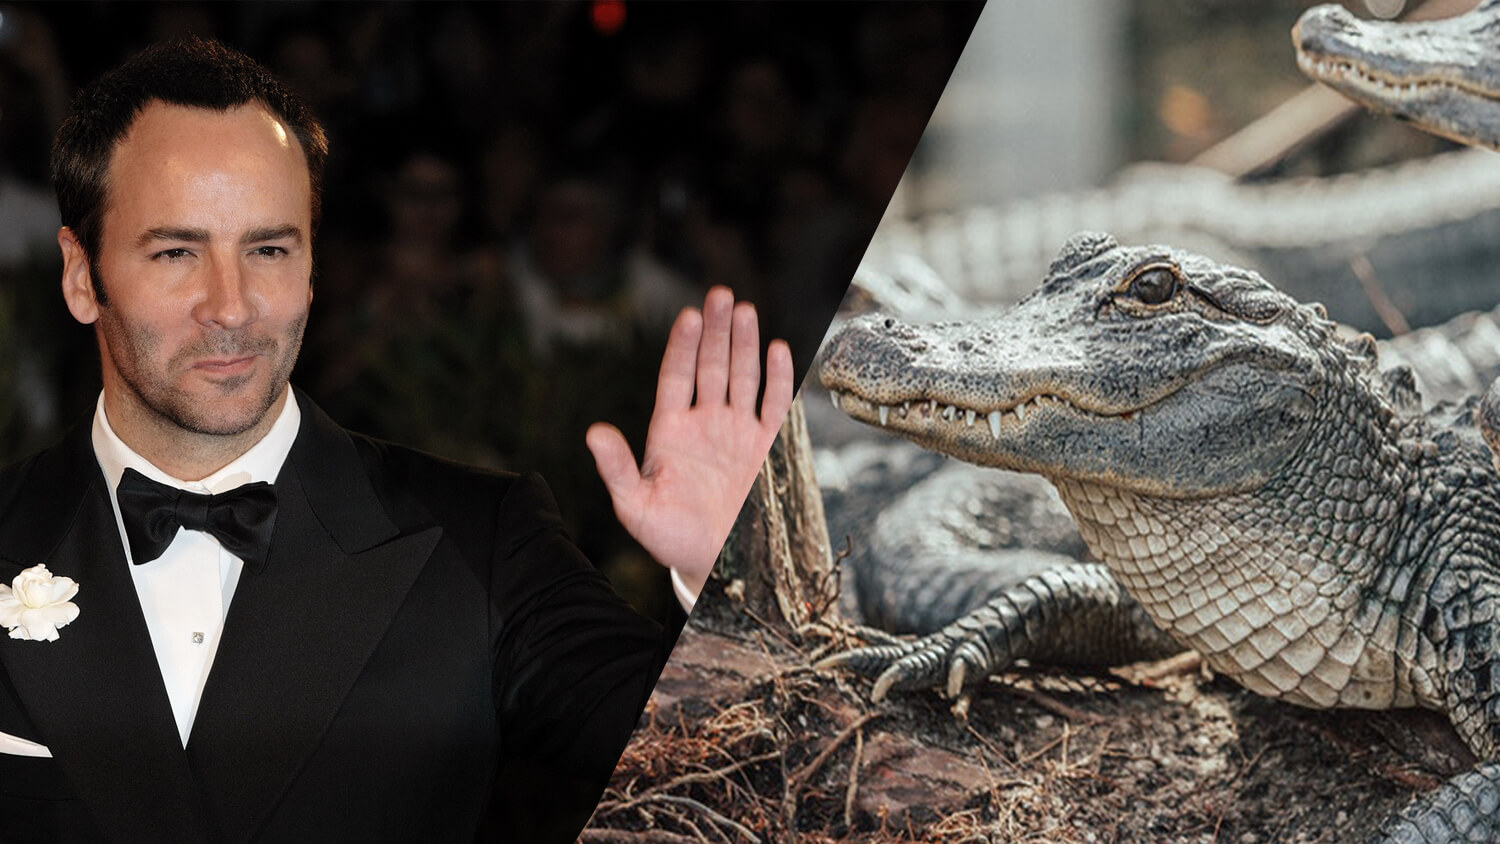 Vegan Designer Tom Ford Launches Cruelty-Free Crocodile Leather at New York Fashion Week